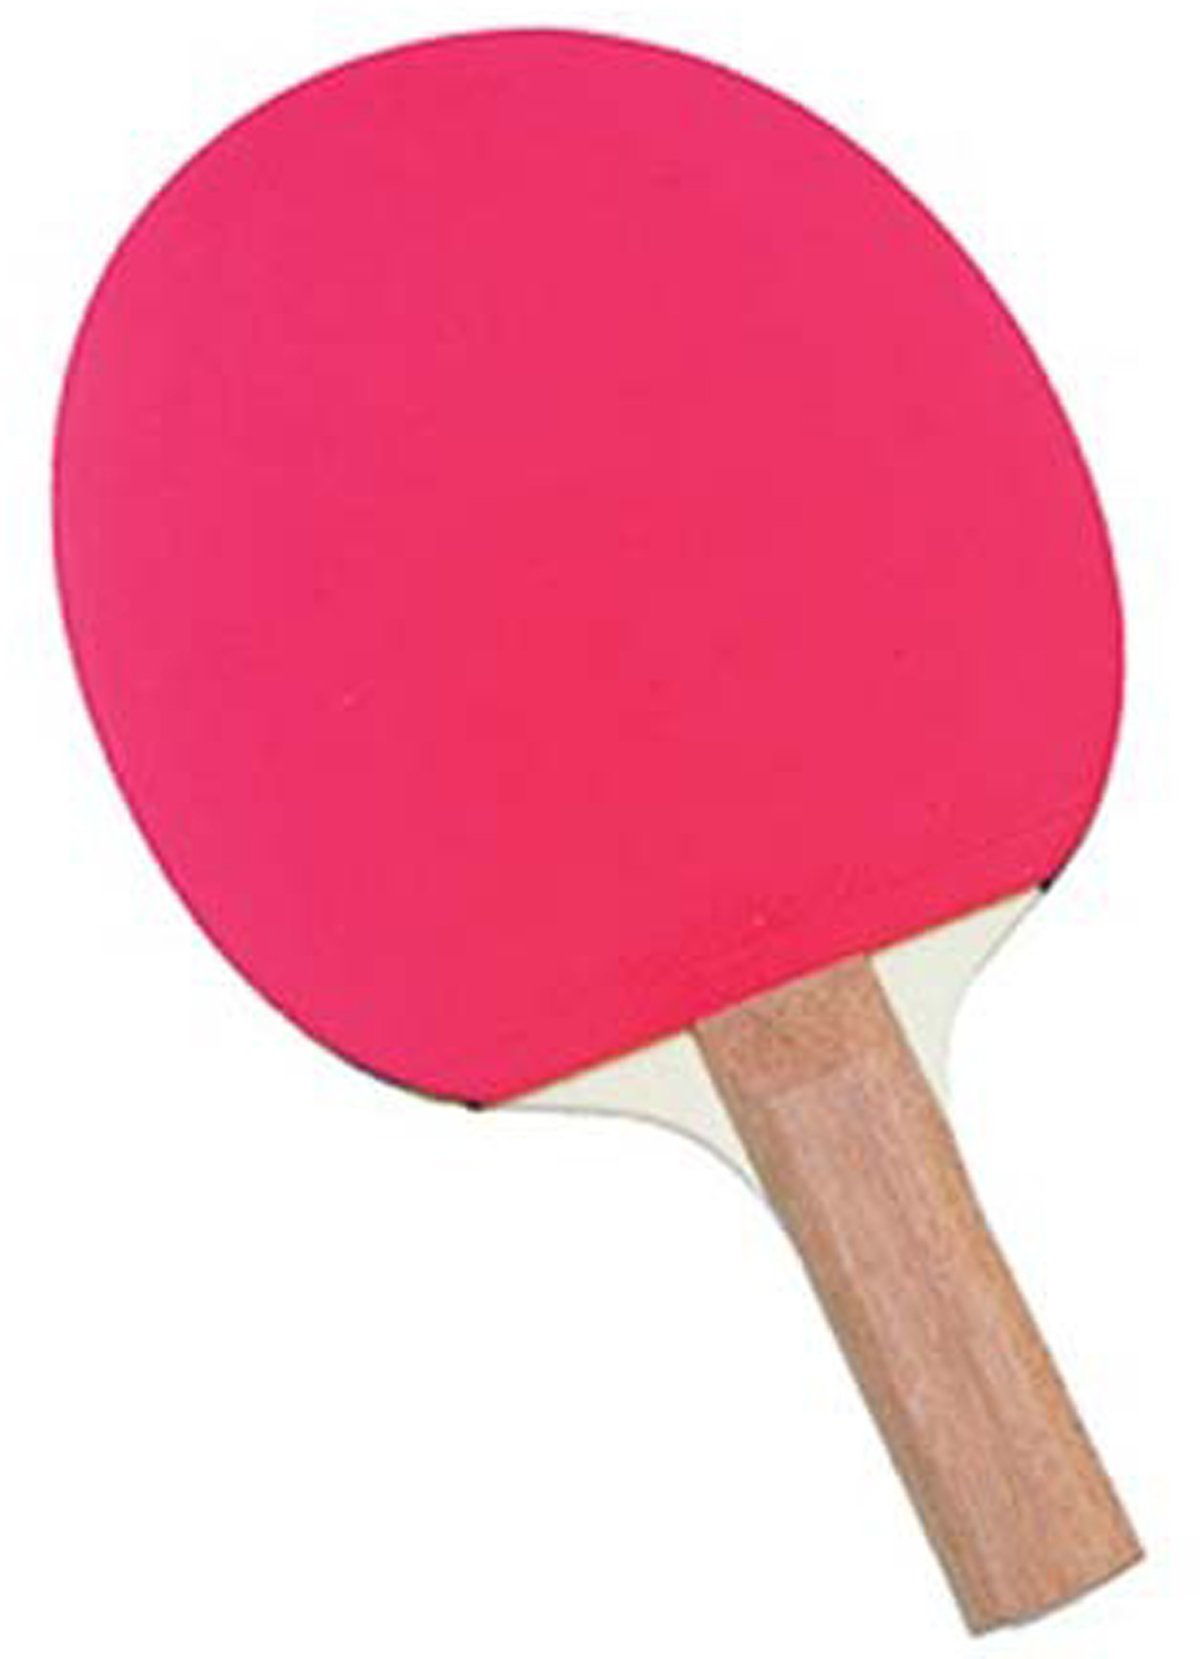 Table Tennis Match Play Blade Paddle Ping Pong Racket Reversed Bat Pack Of 12 by Sportsgear US